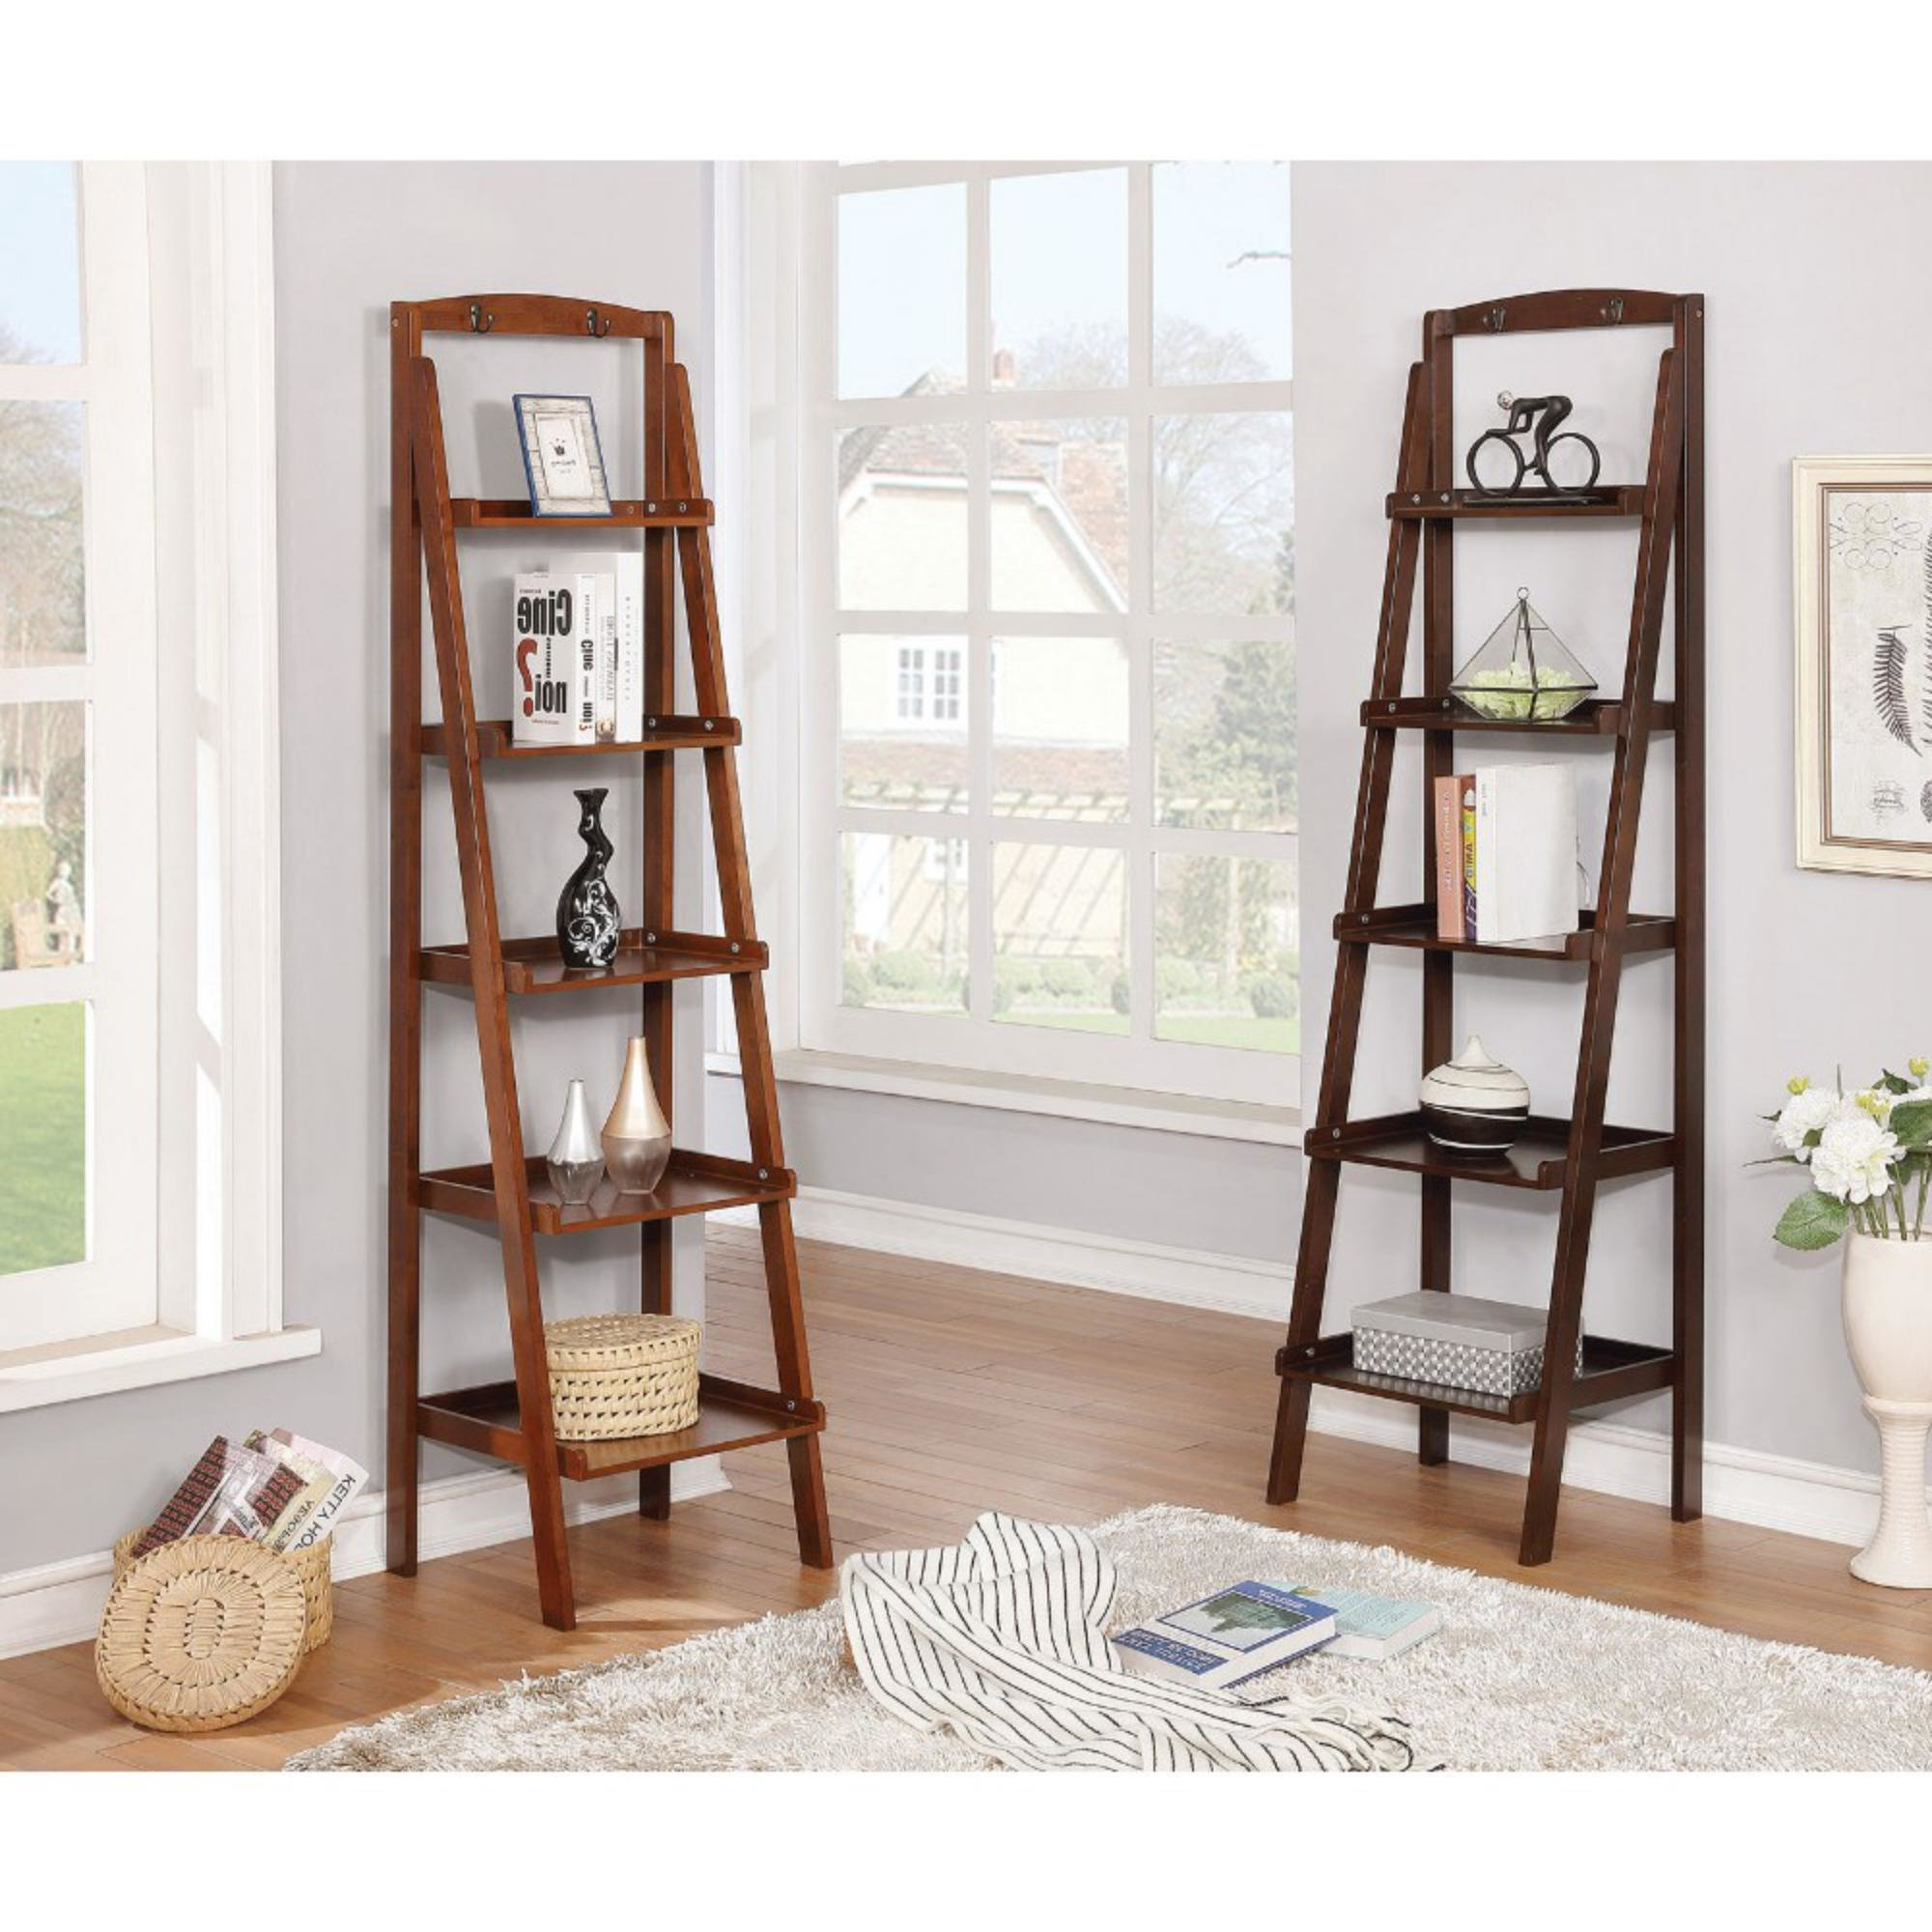 2020 Bordelon Slatted Ladder Bookcases Throughout Leedom Contemporary 5 Tier Wooden Ladder Bookcase (View 4 of 20)